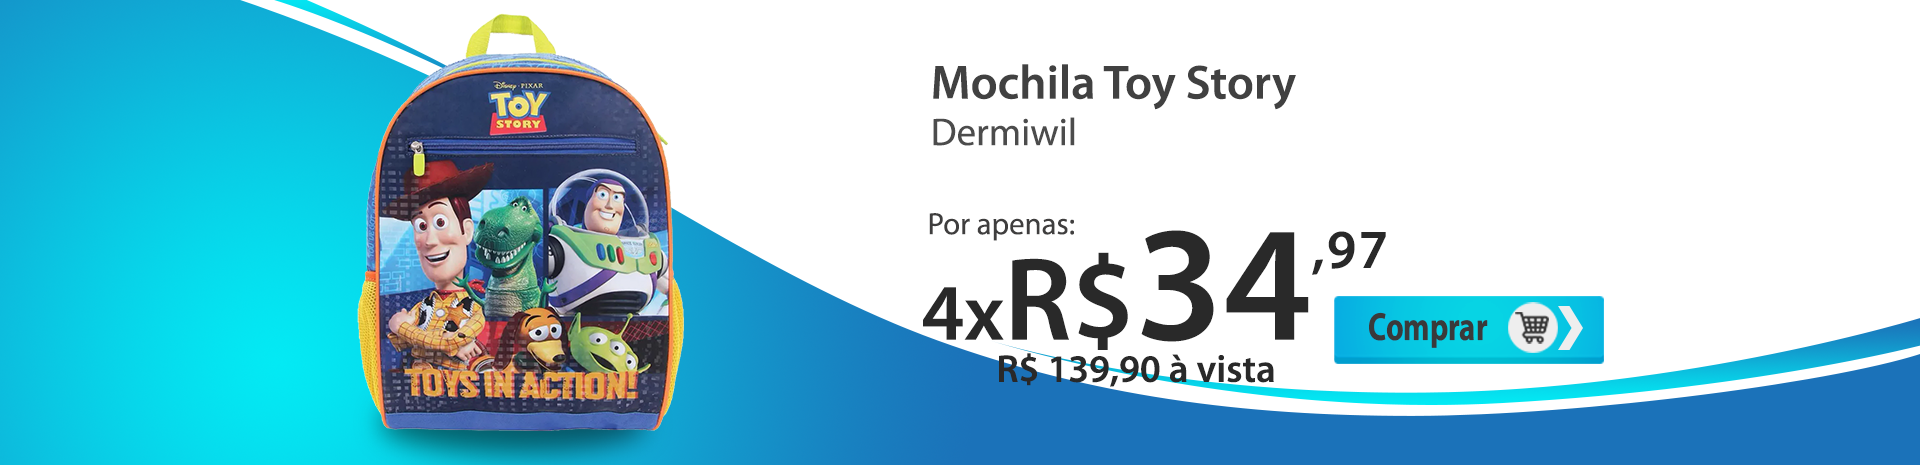 43e134657 banner categoria mochila toy